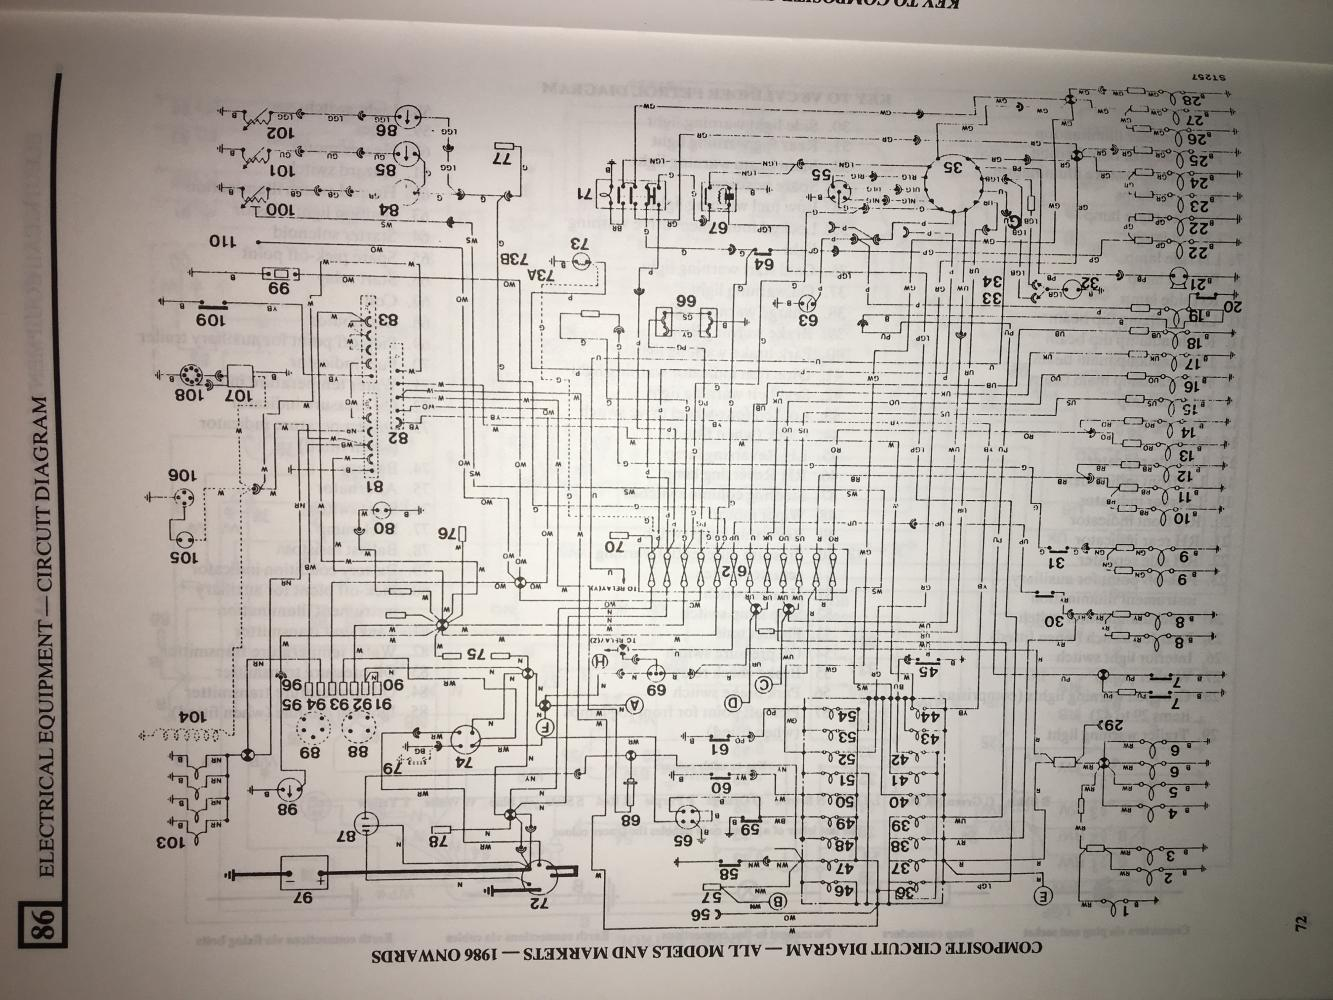 Early Row Wiring Diagram Defender Source 1989 Land Rover Click Image For Larger Version Name Img 8719 Views 176 Size 2166